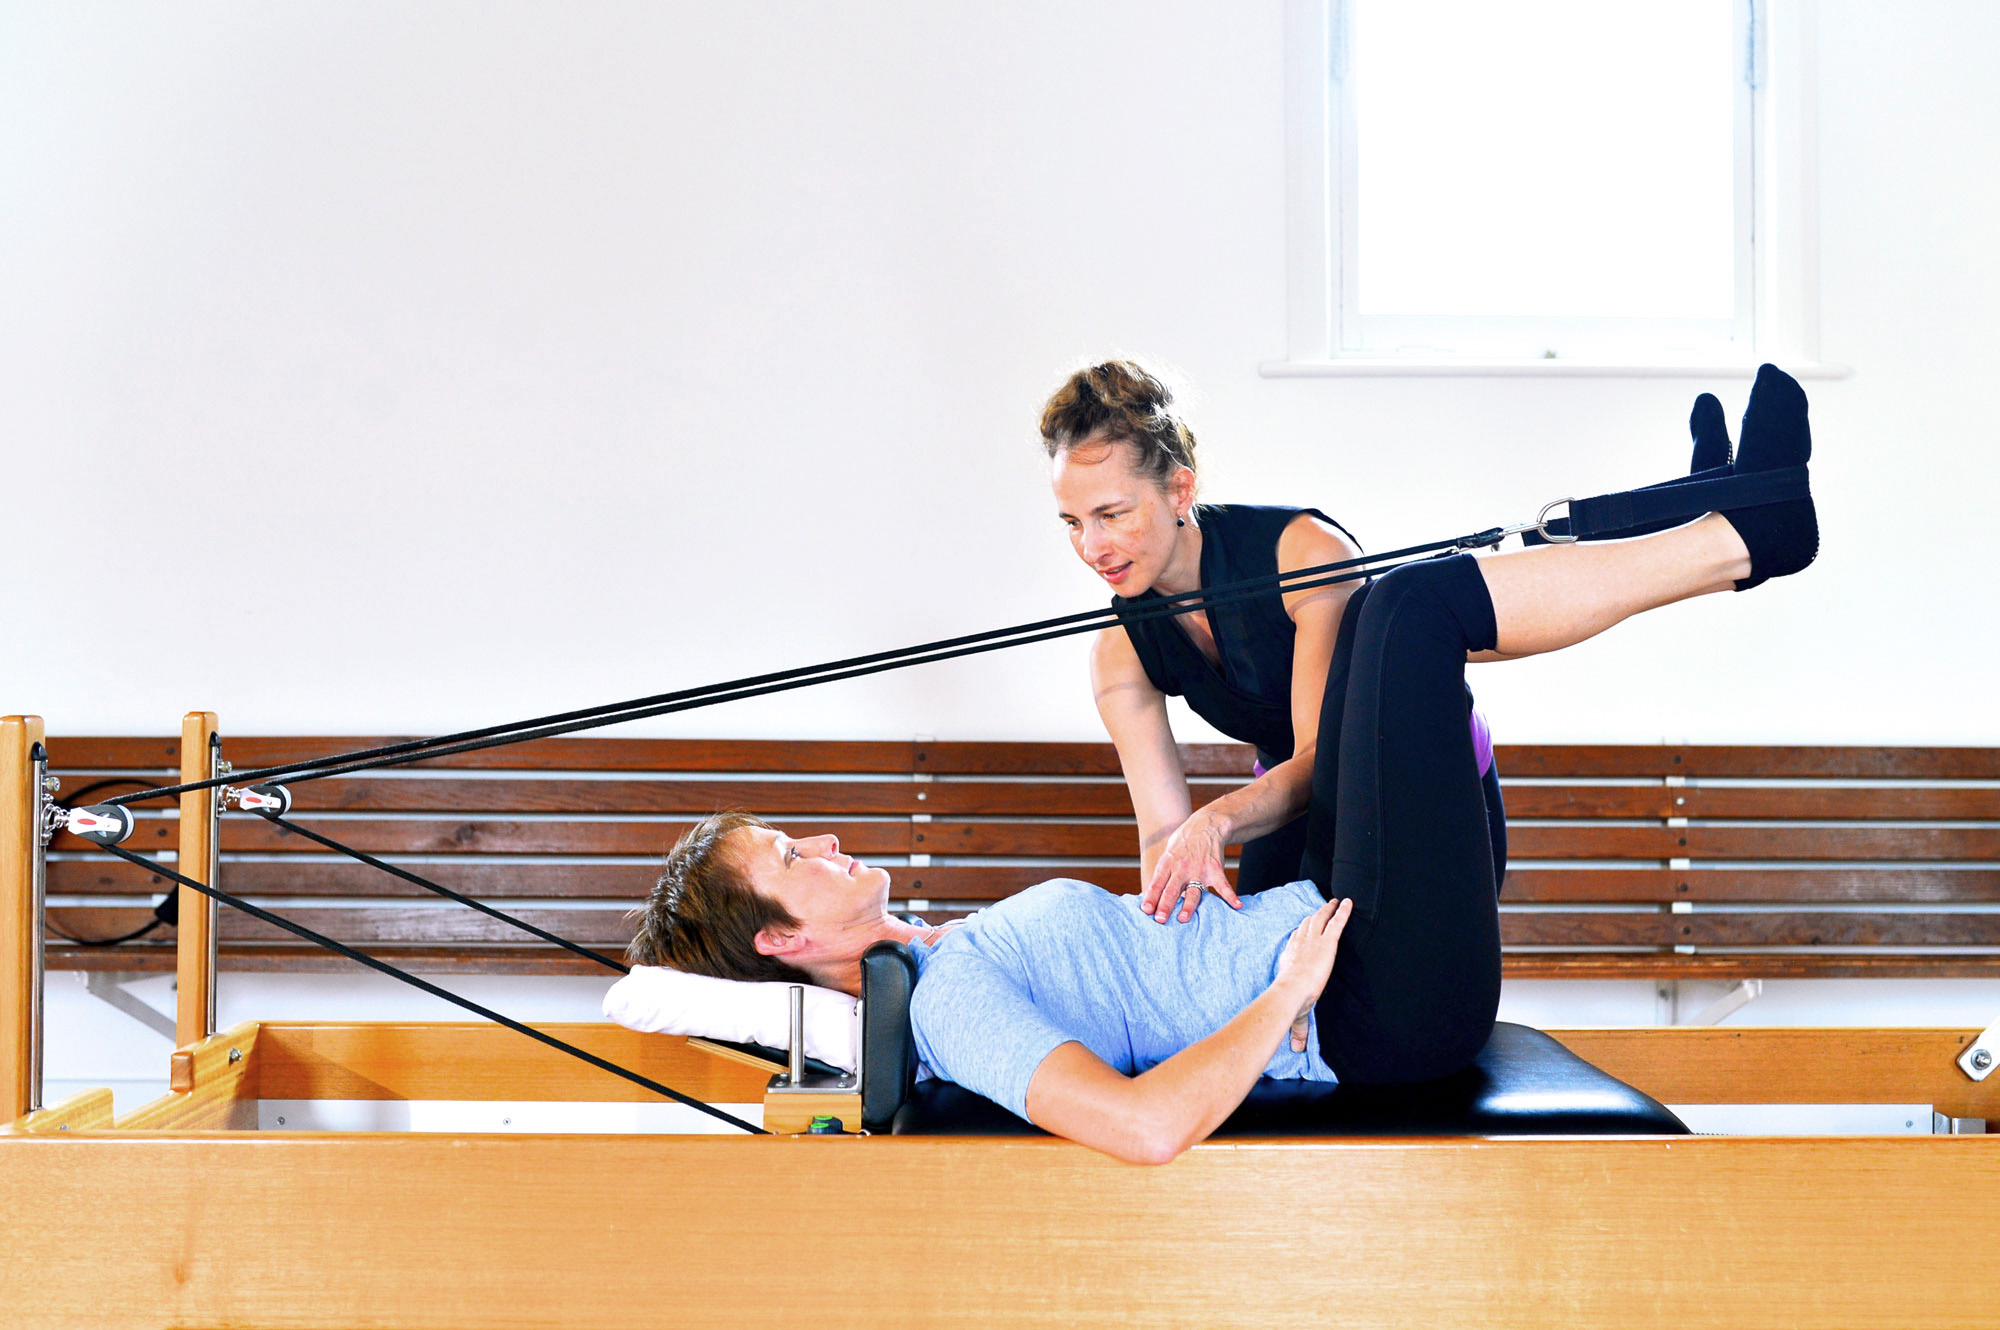 Pilates-Training sml.jpg